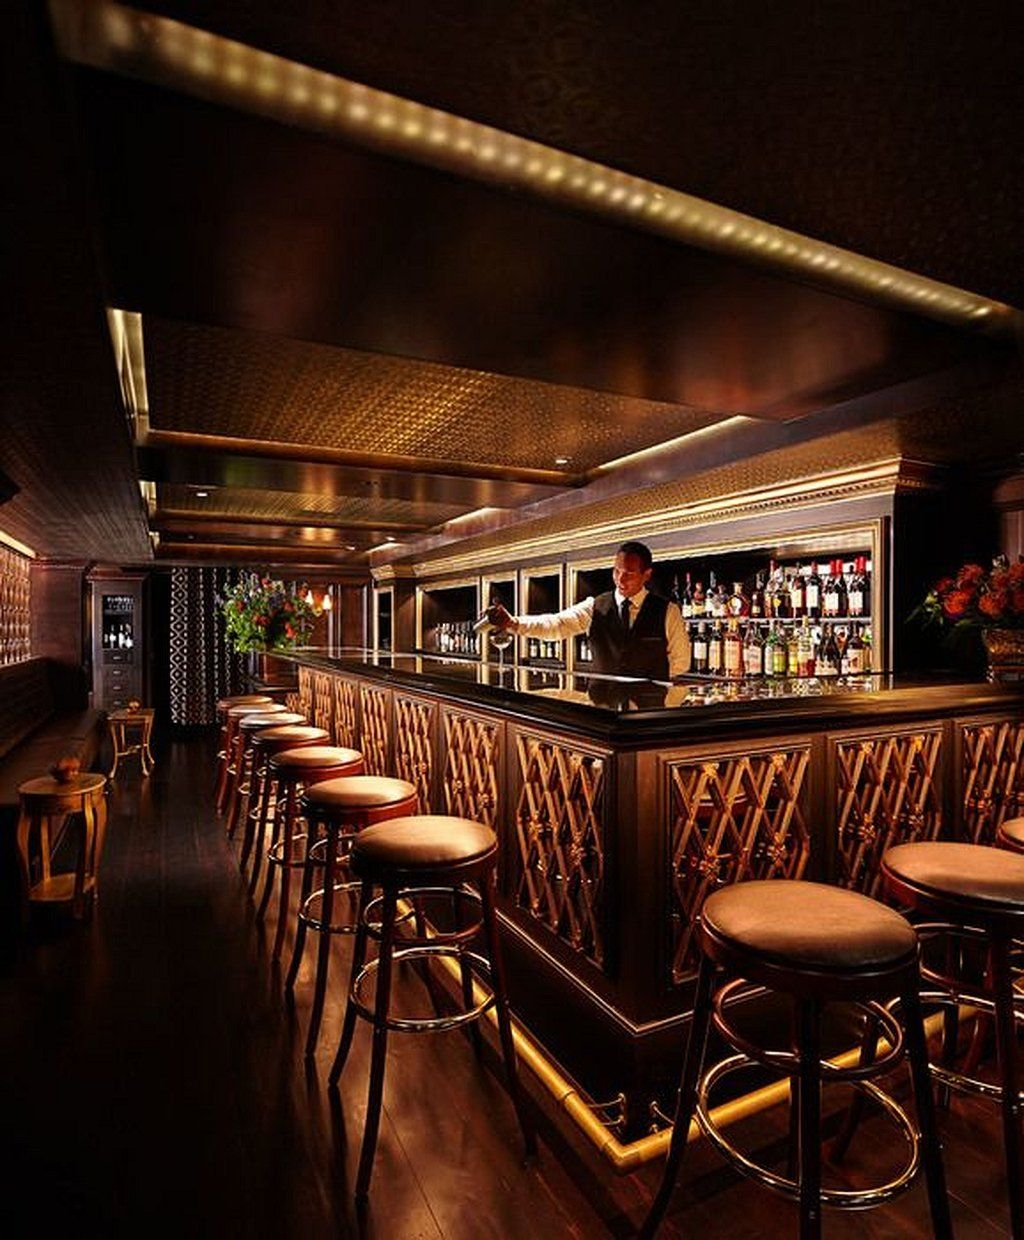 Restaurant Bar Interior Design: Bar Design Restaurant Lounge 2